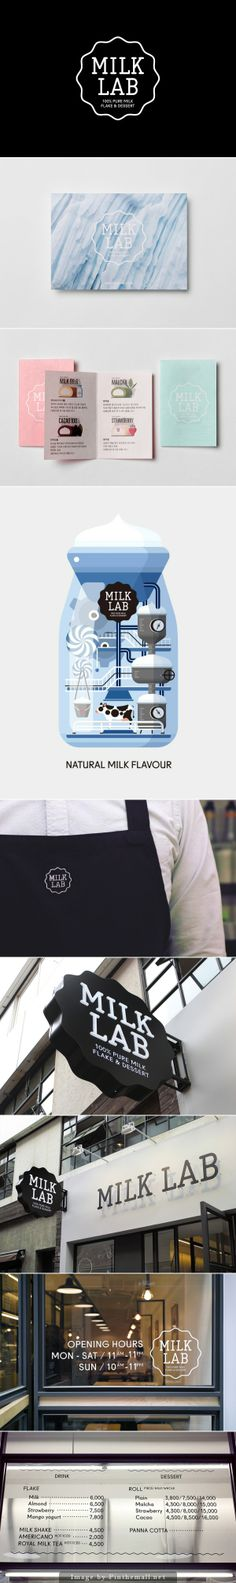 Milk Lab Branding by Studio FNT